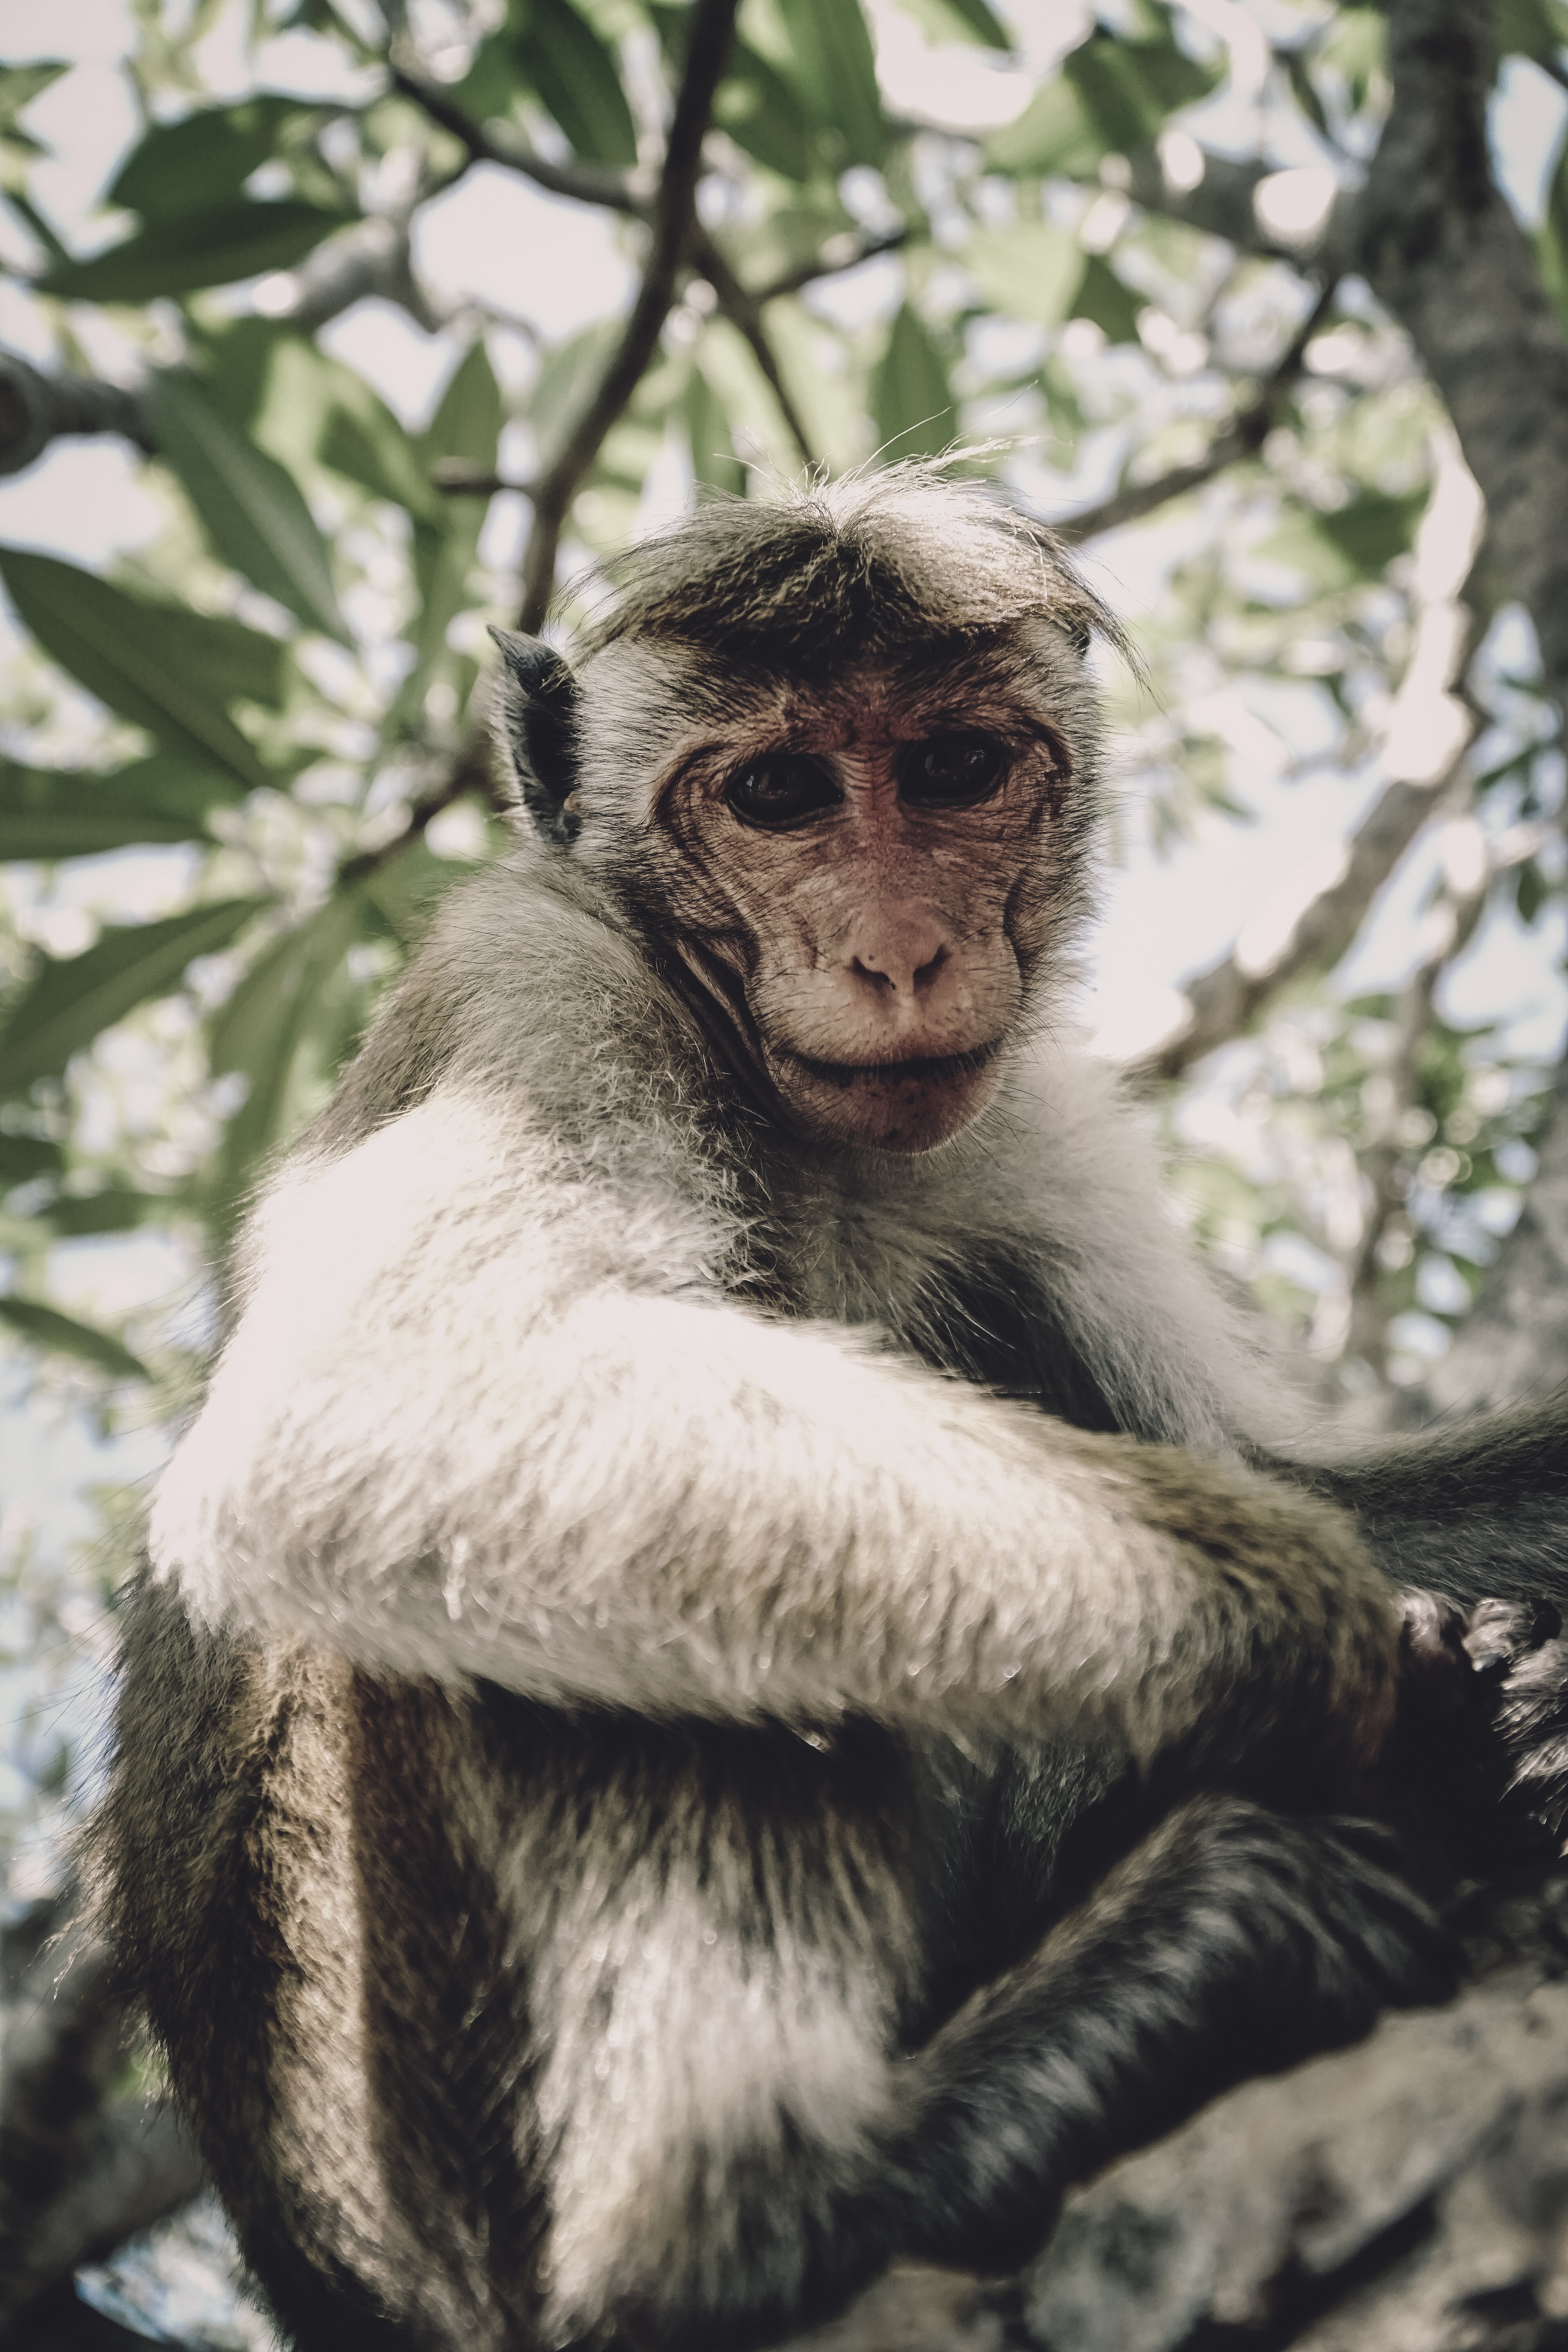 Macaque monkey perched in a tree in the wild